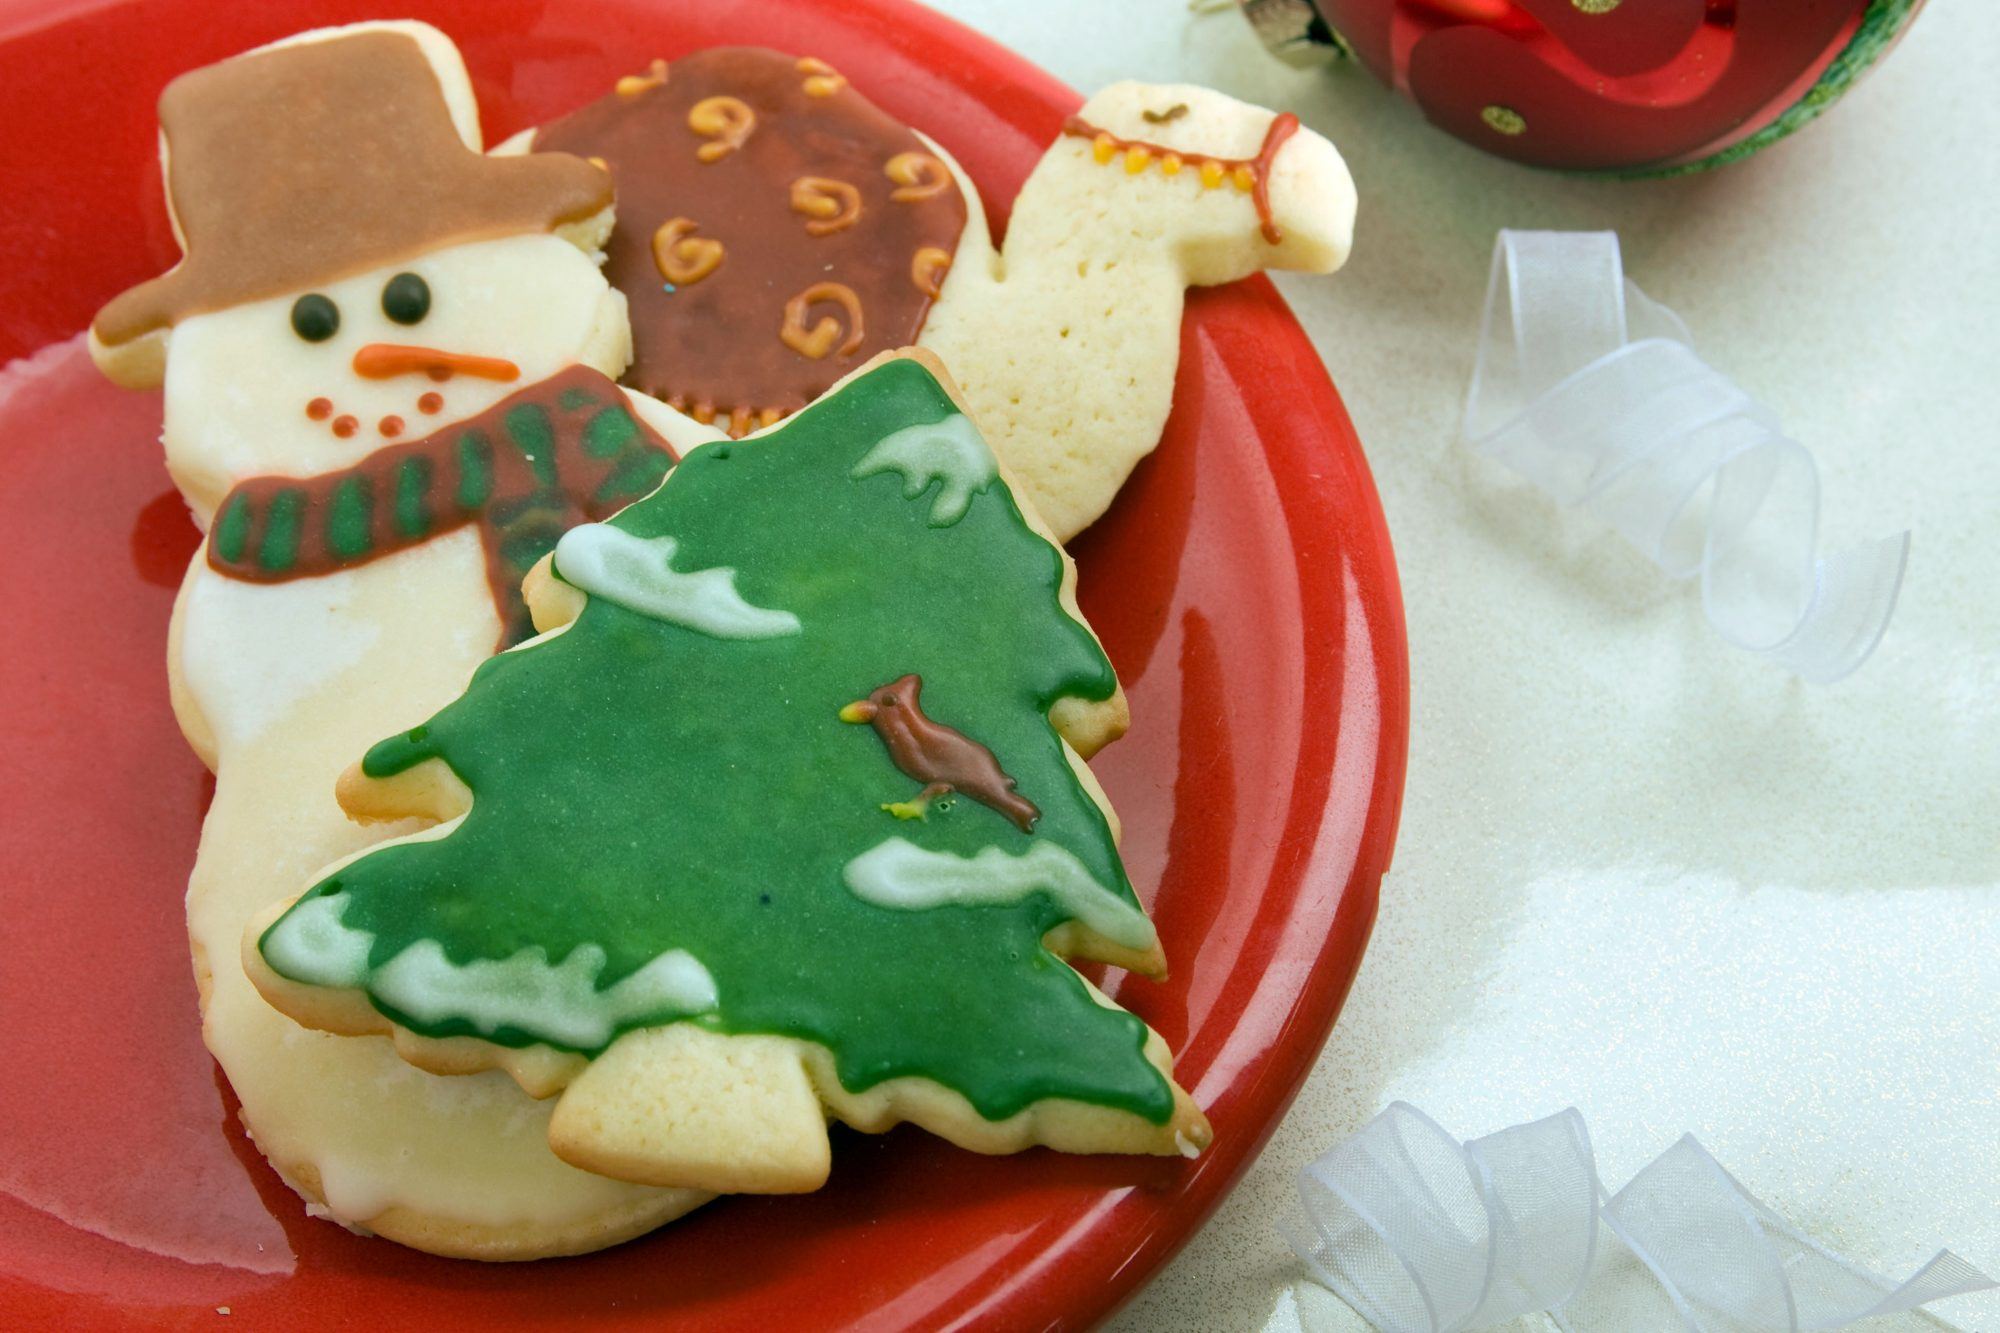 three cookies on a red plate: a snowman wearing a scarf and brown top hat, an evergreen with snow and a cardinal on its boughs, and a camel